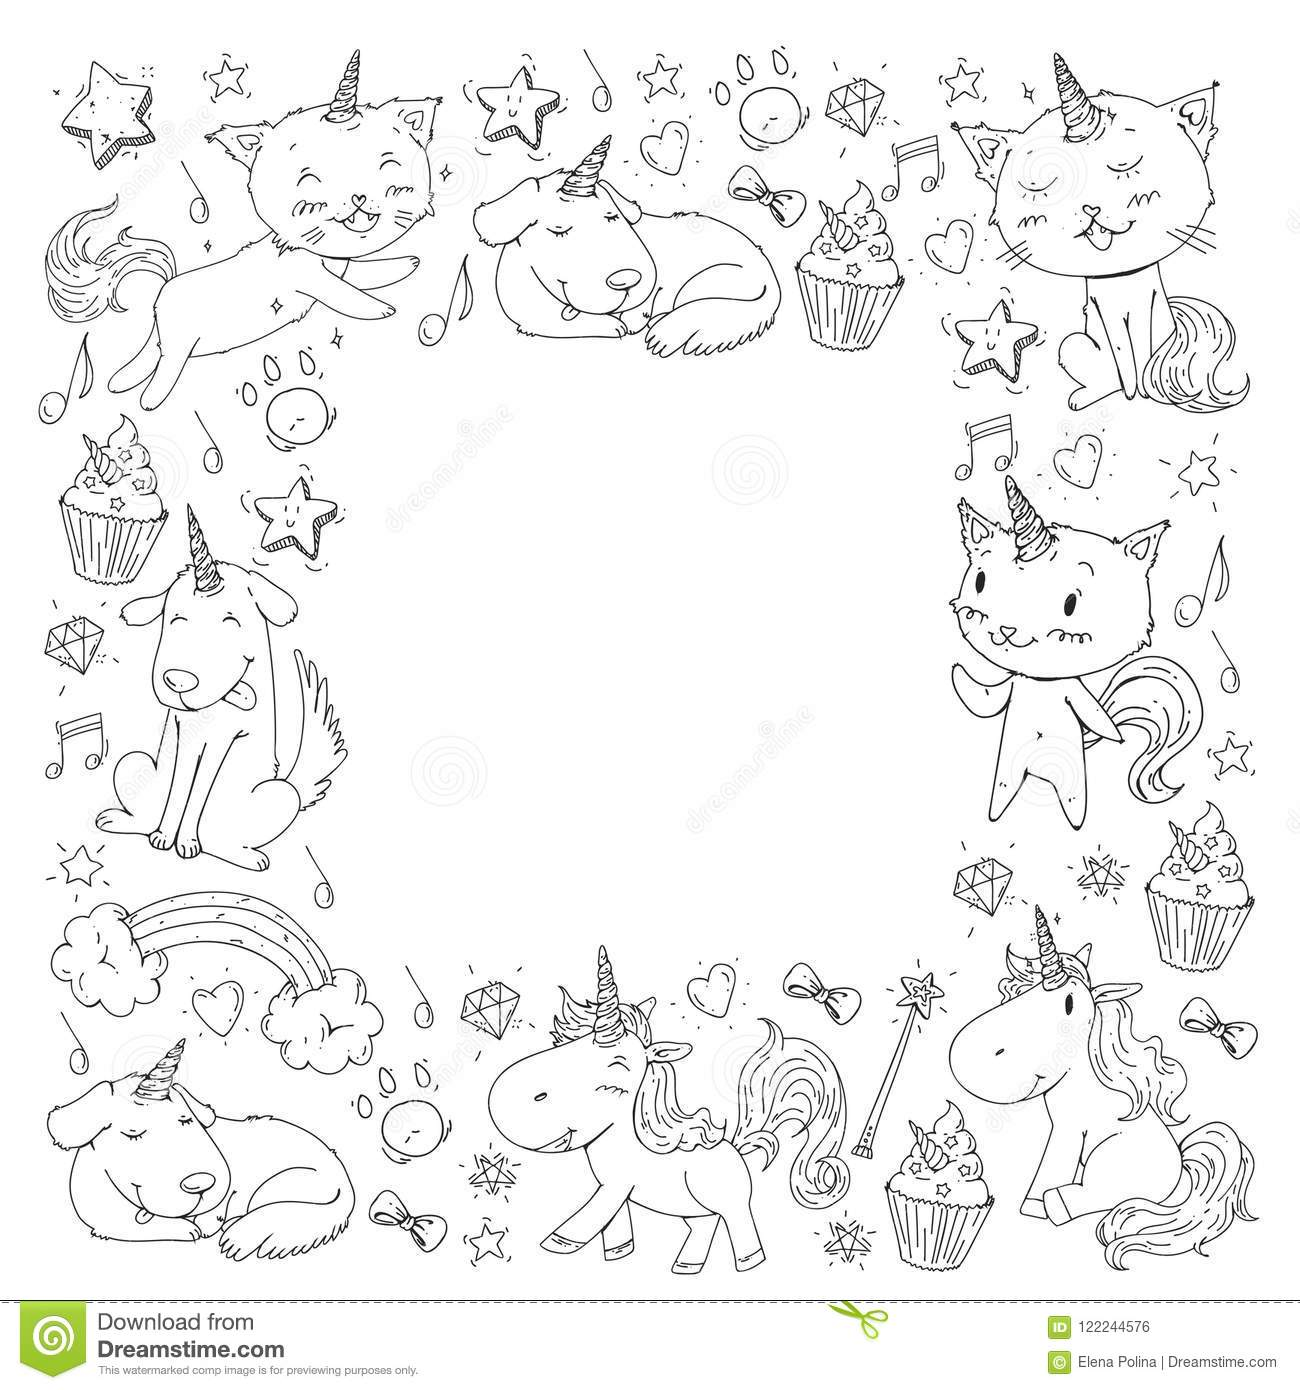 Unicorn. Cats, Dog, Horse, Pony. Vector Image. Coloring Page For ...